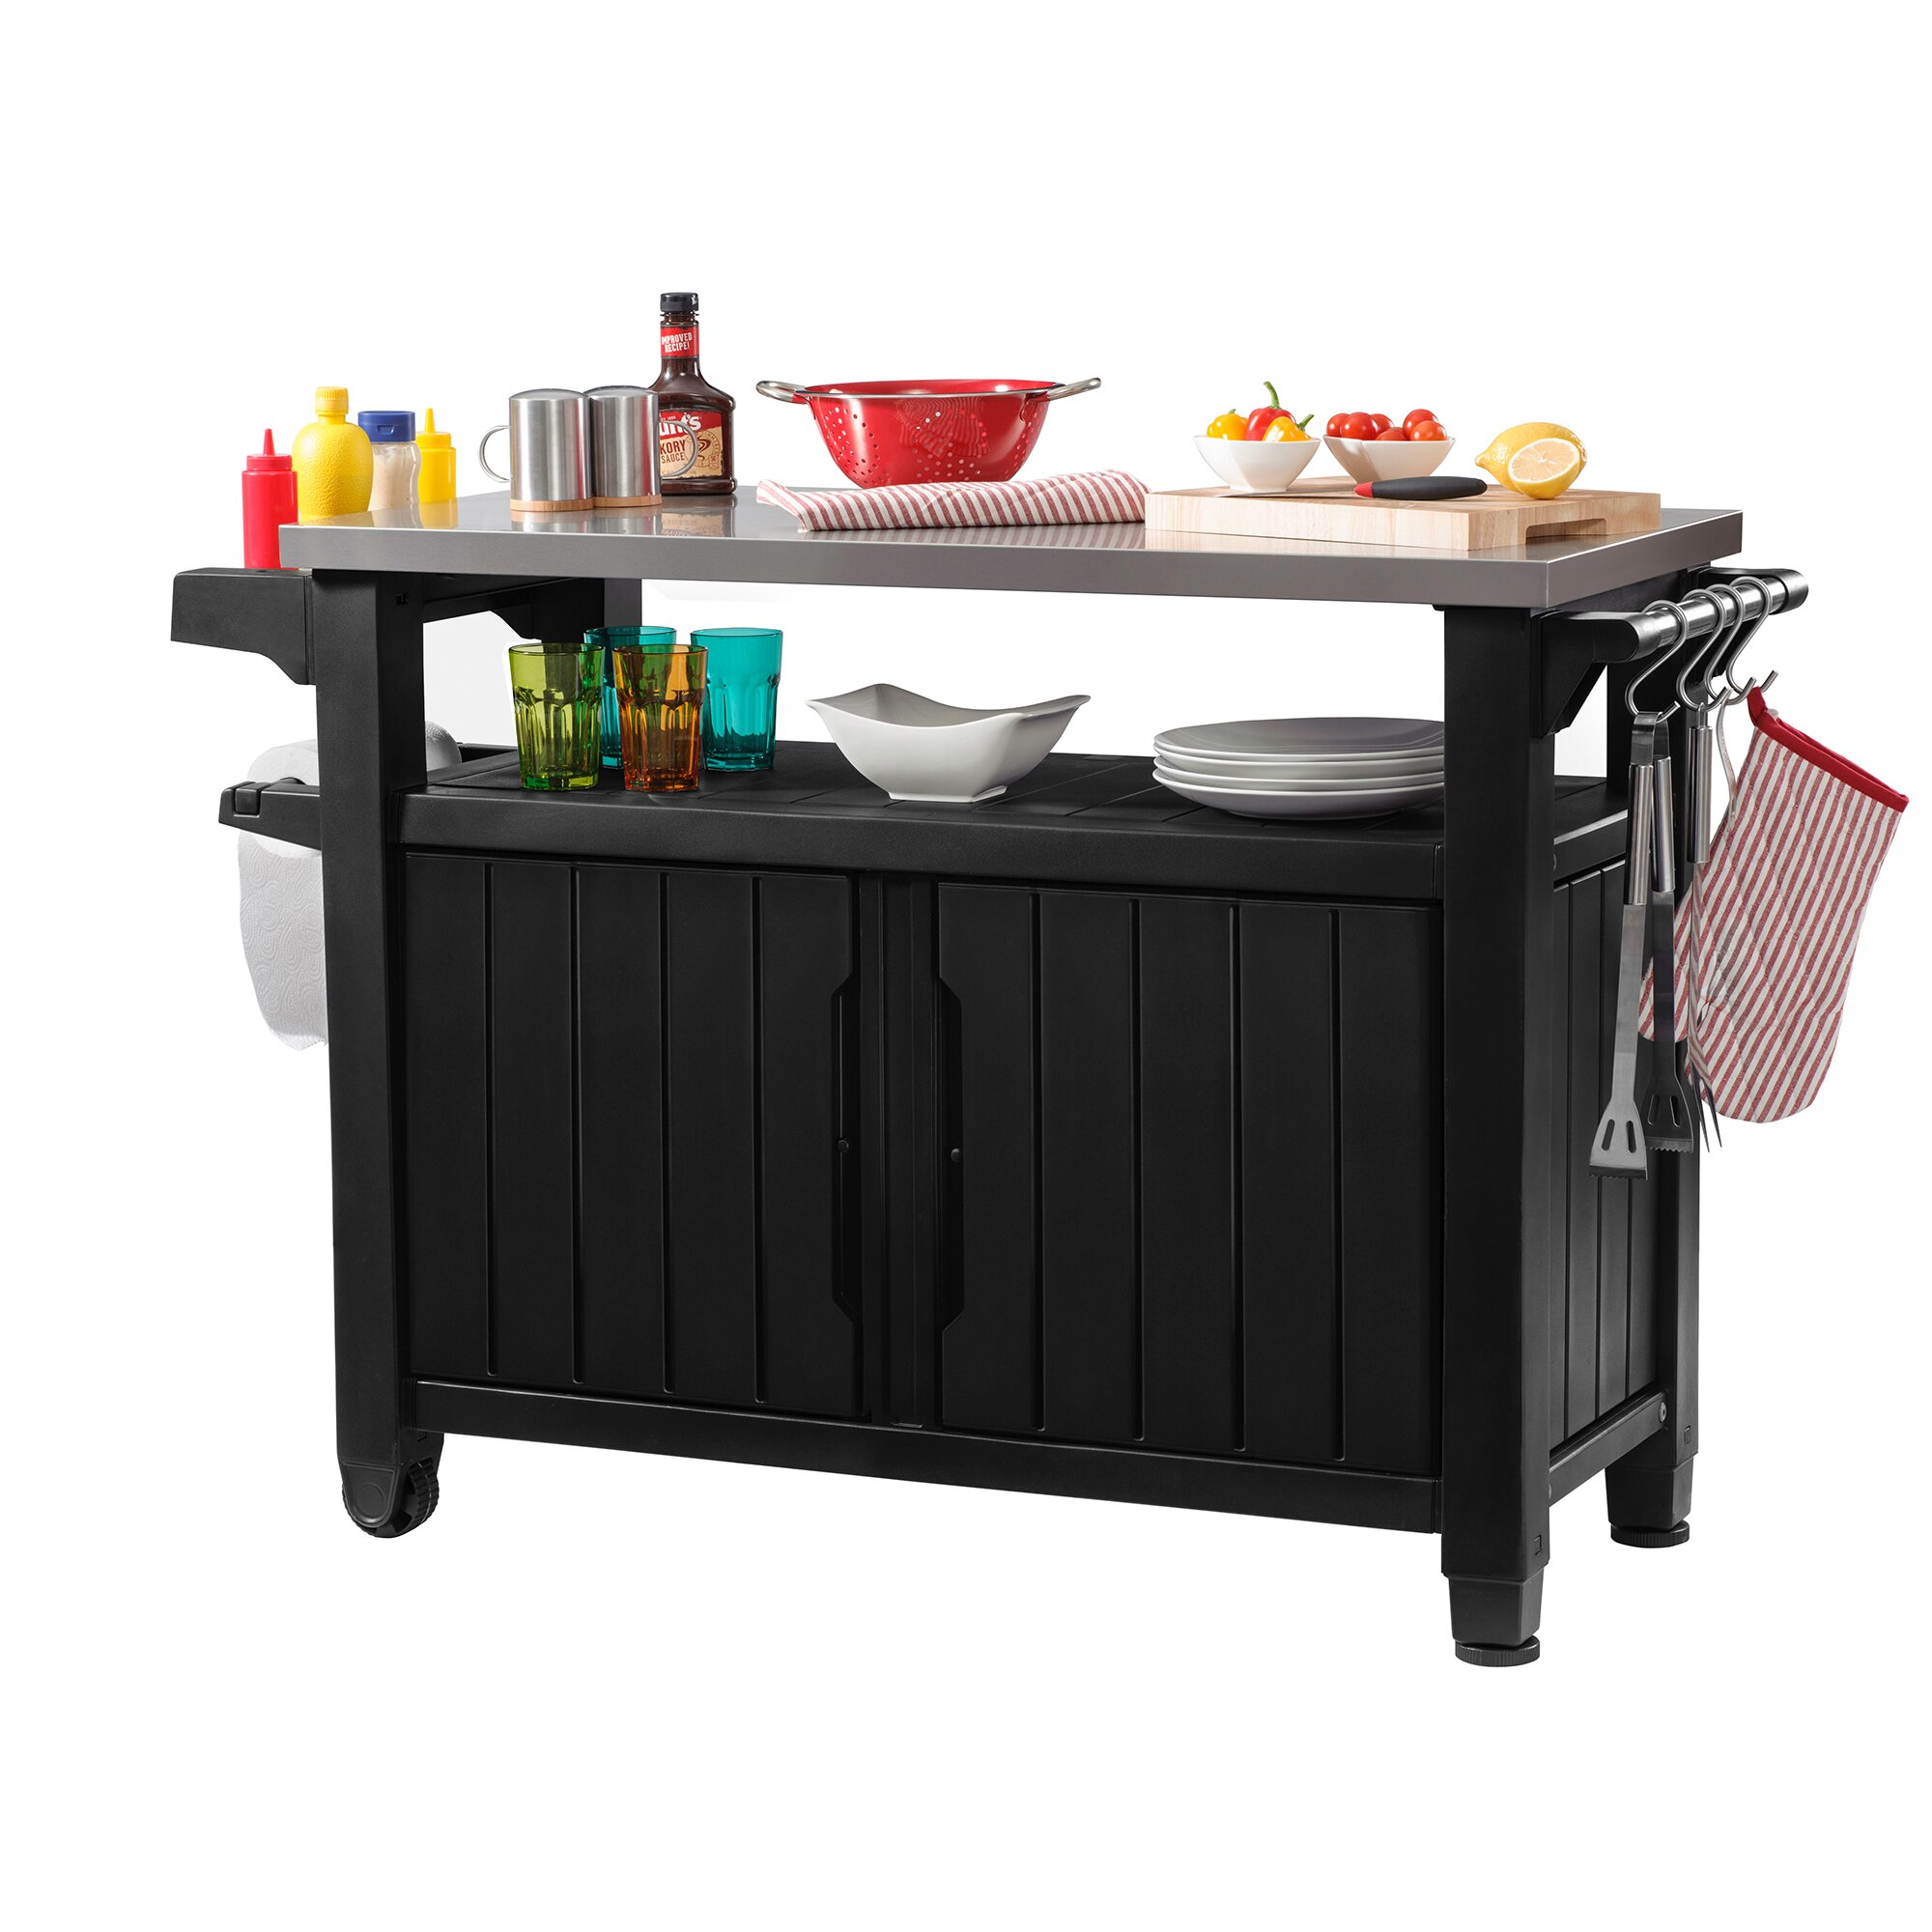 Keter unity bar serving cart reviews wayfair for Armoire exterieur